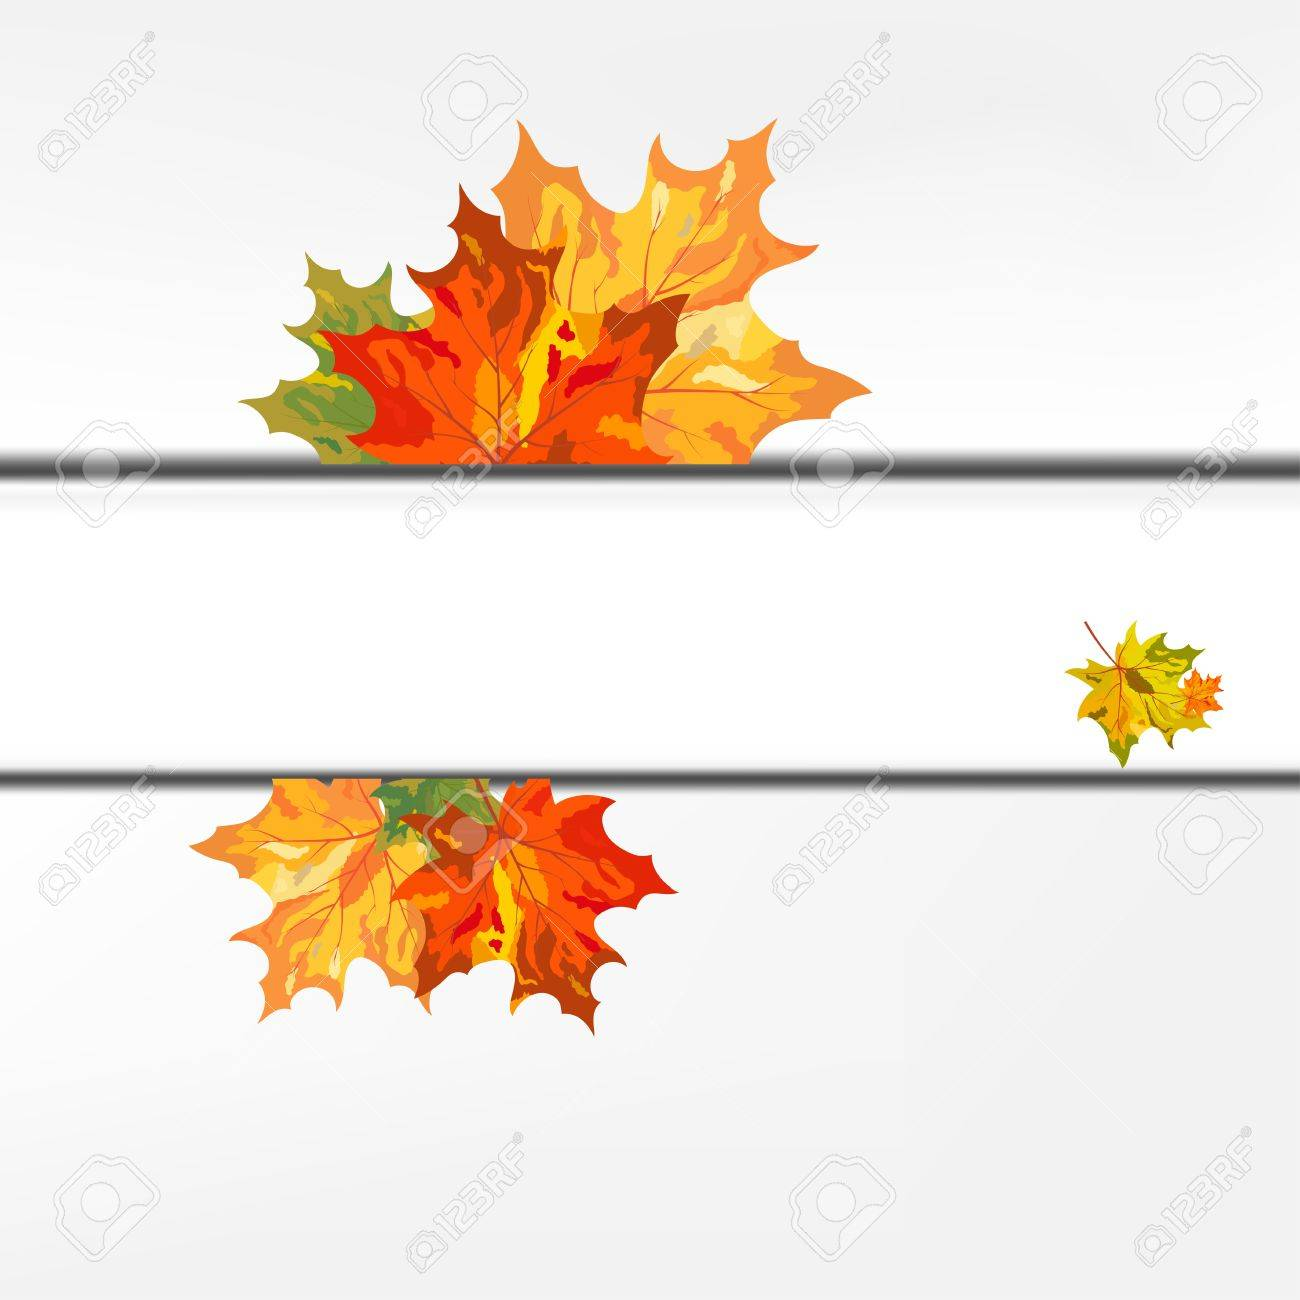 Autumn Color Maple Leaves Frame. Illustration. Royalty Free Cliparts ...